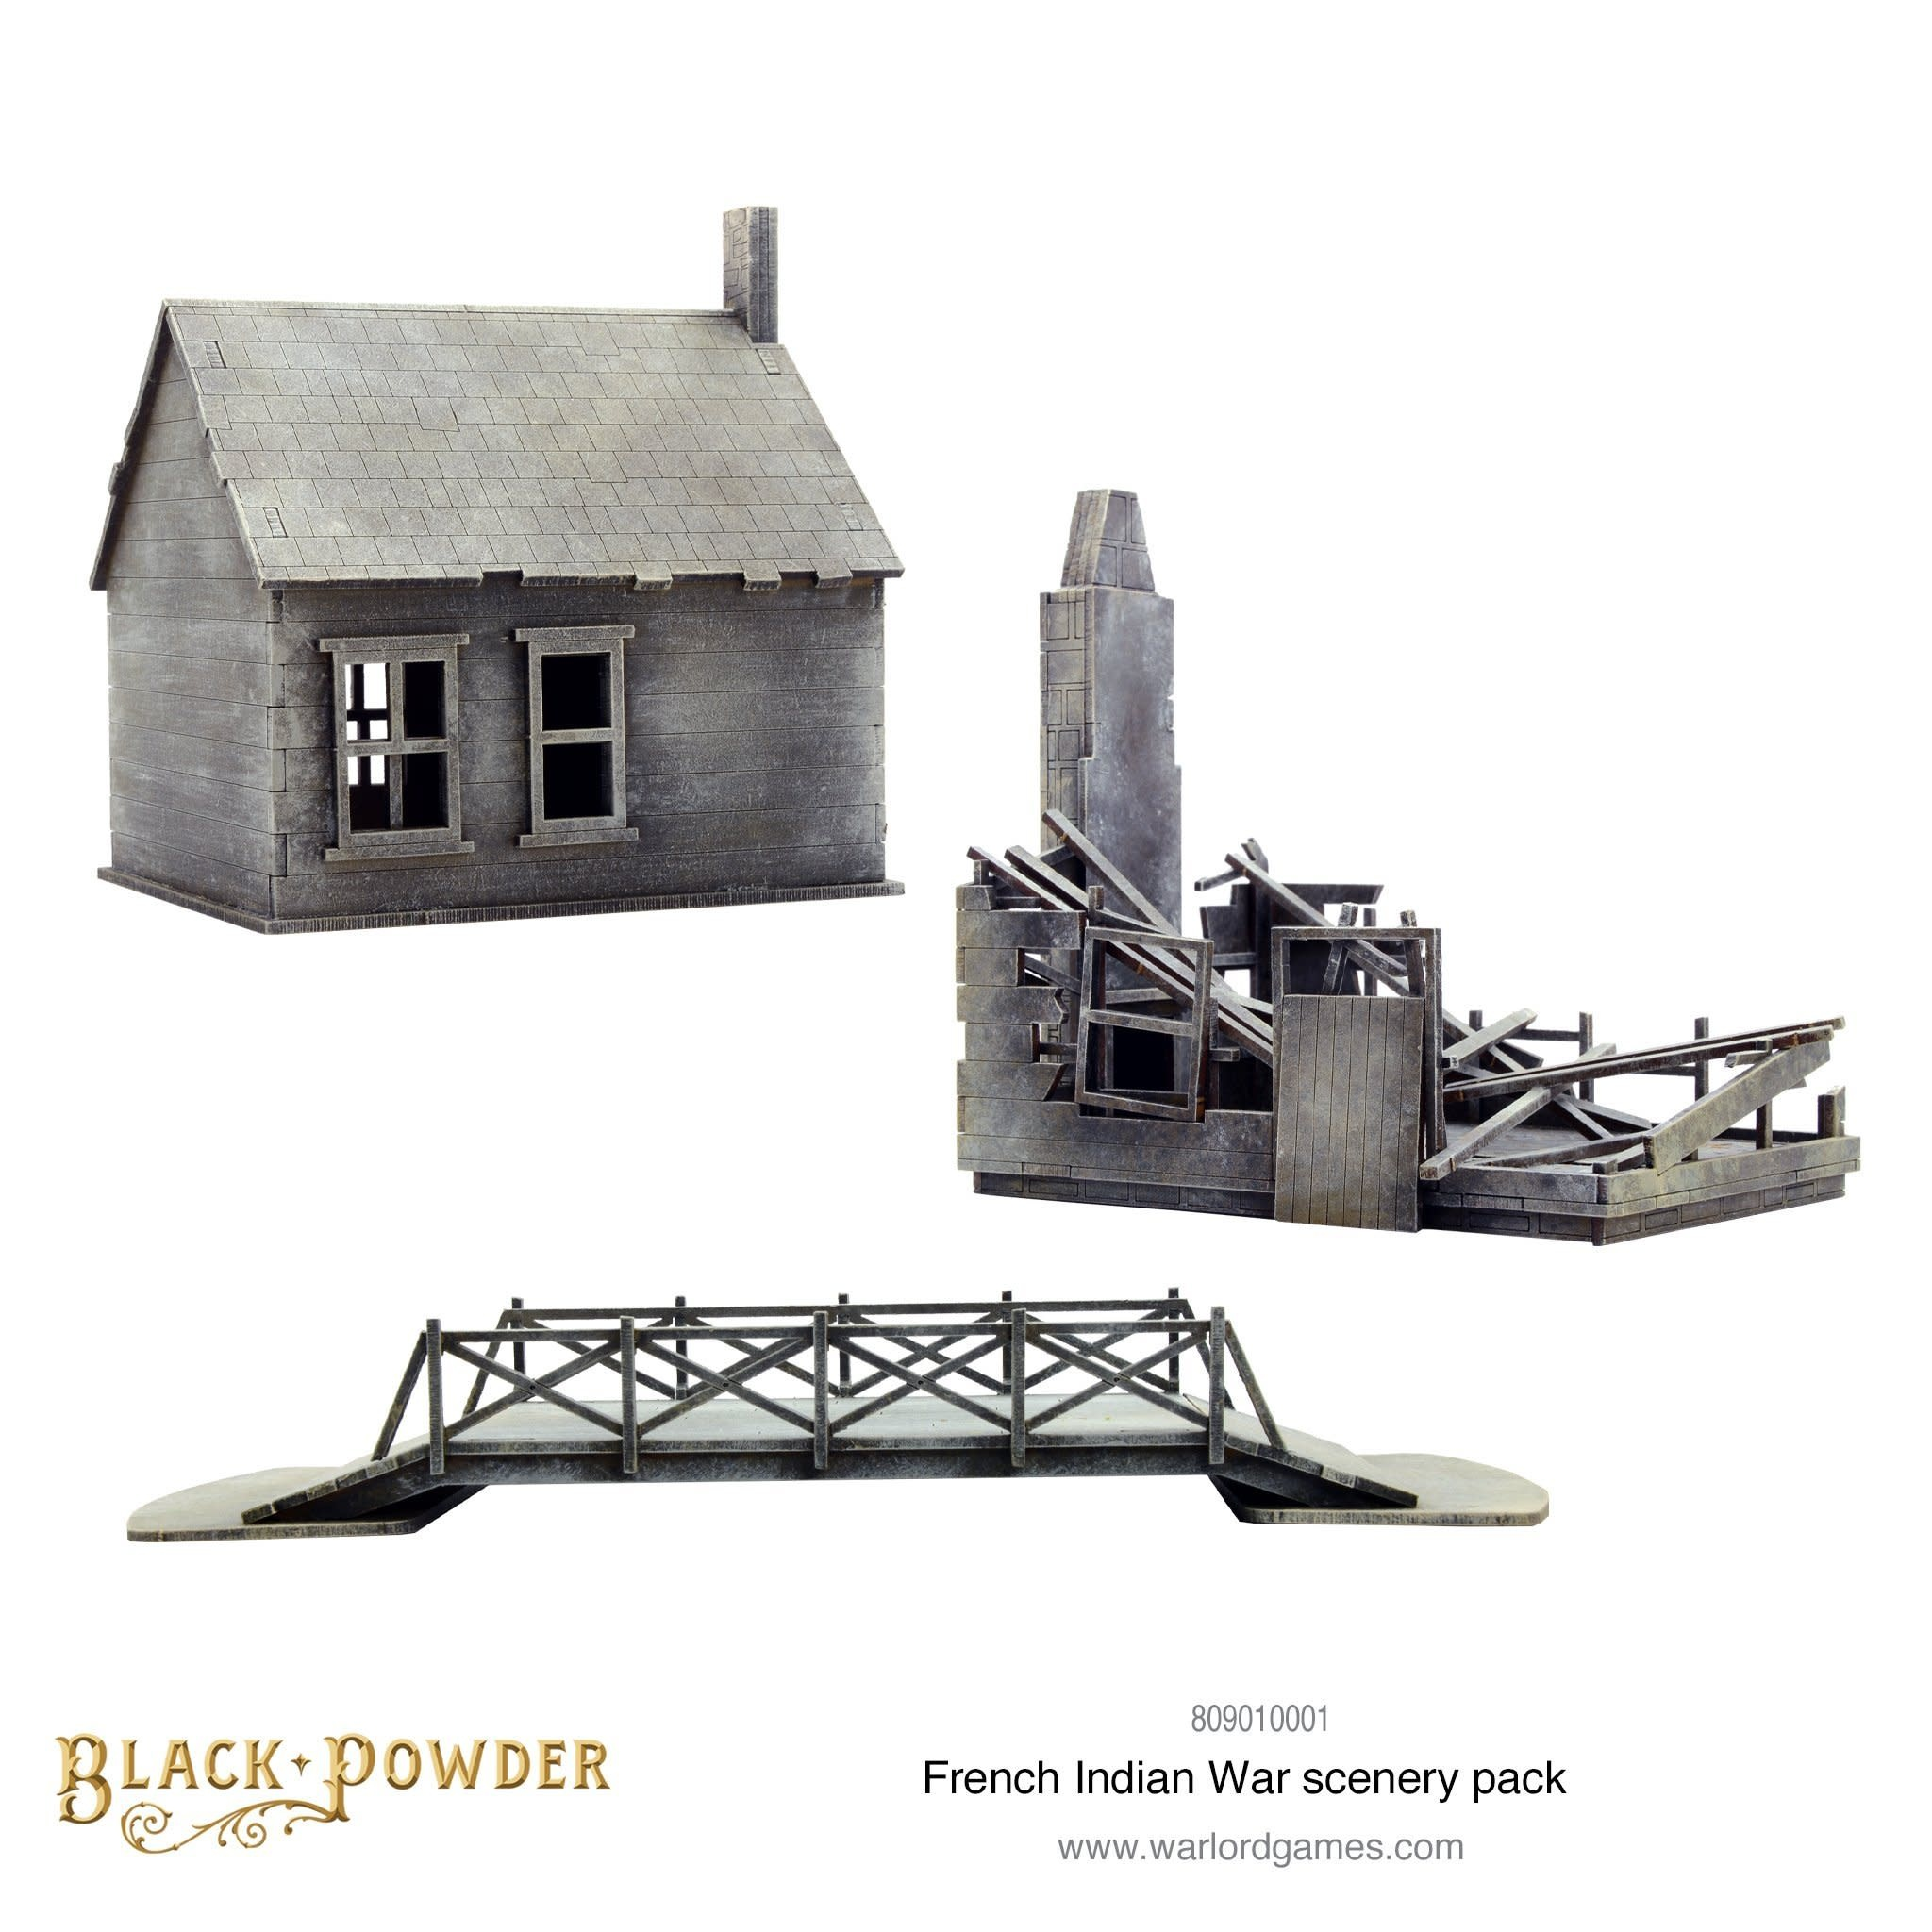 Warlord games Black Powder: French Indian War Scenery Pack